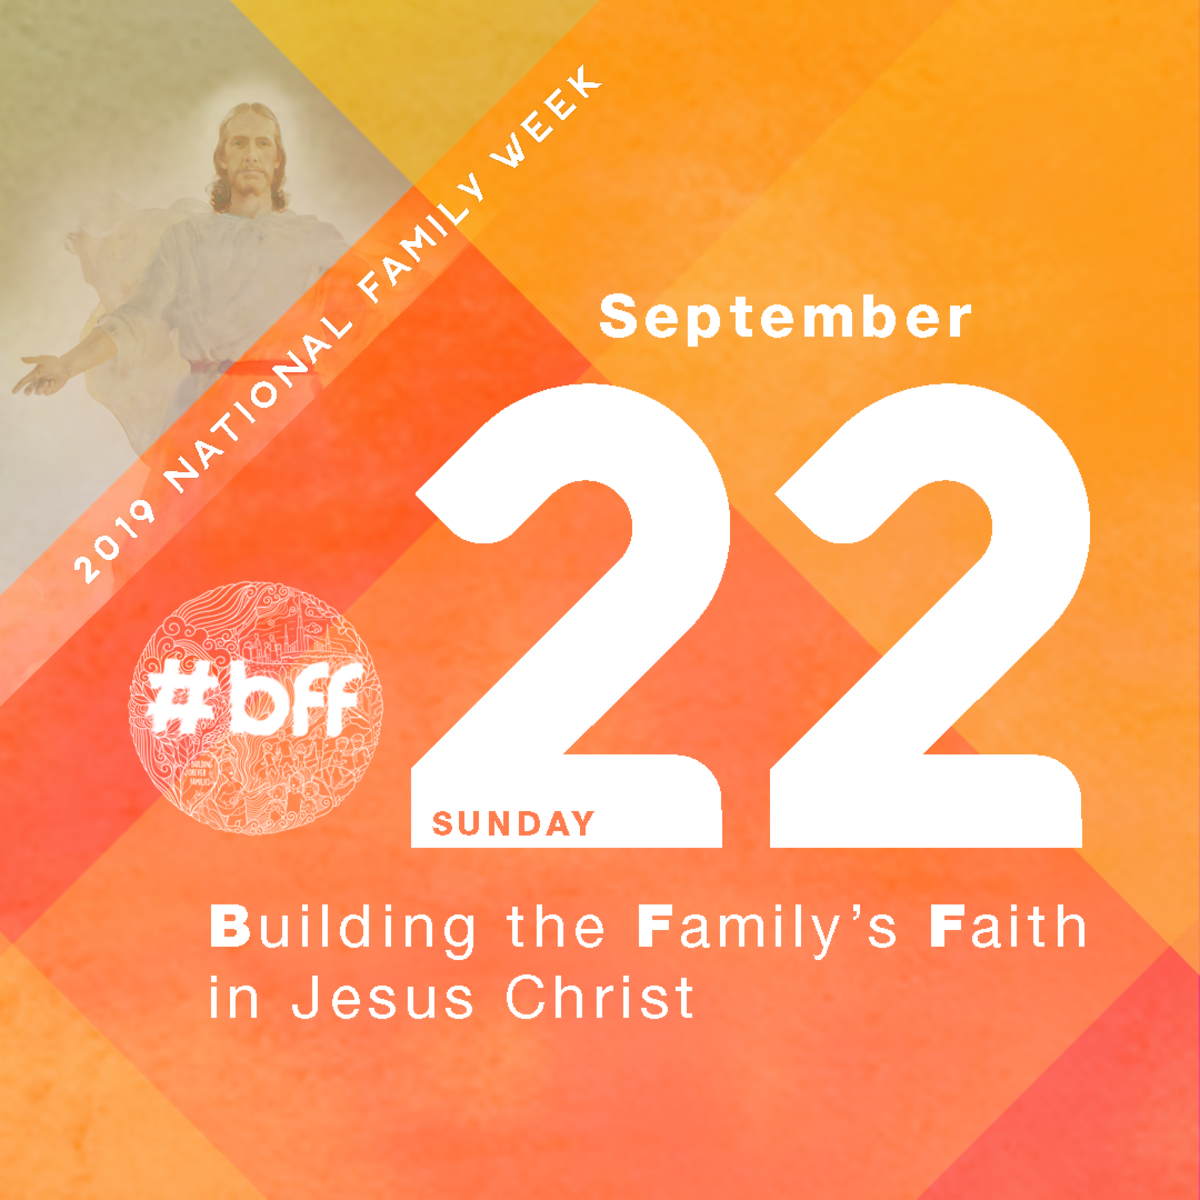 Building the Family's Faith in Jesus Christ